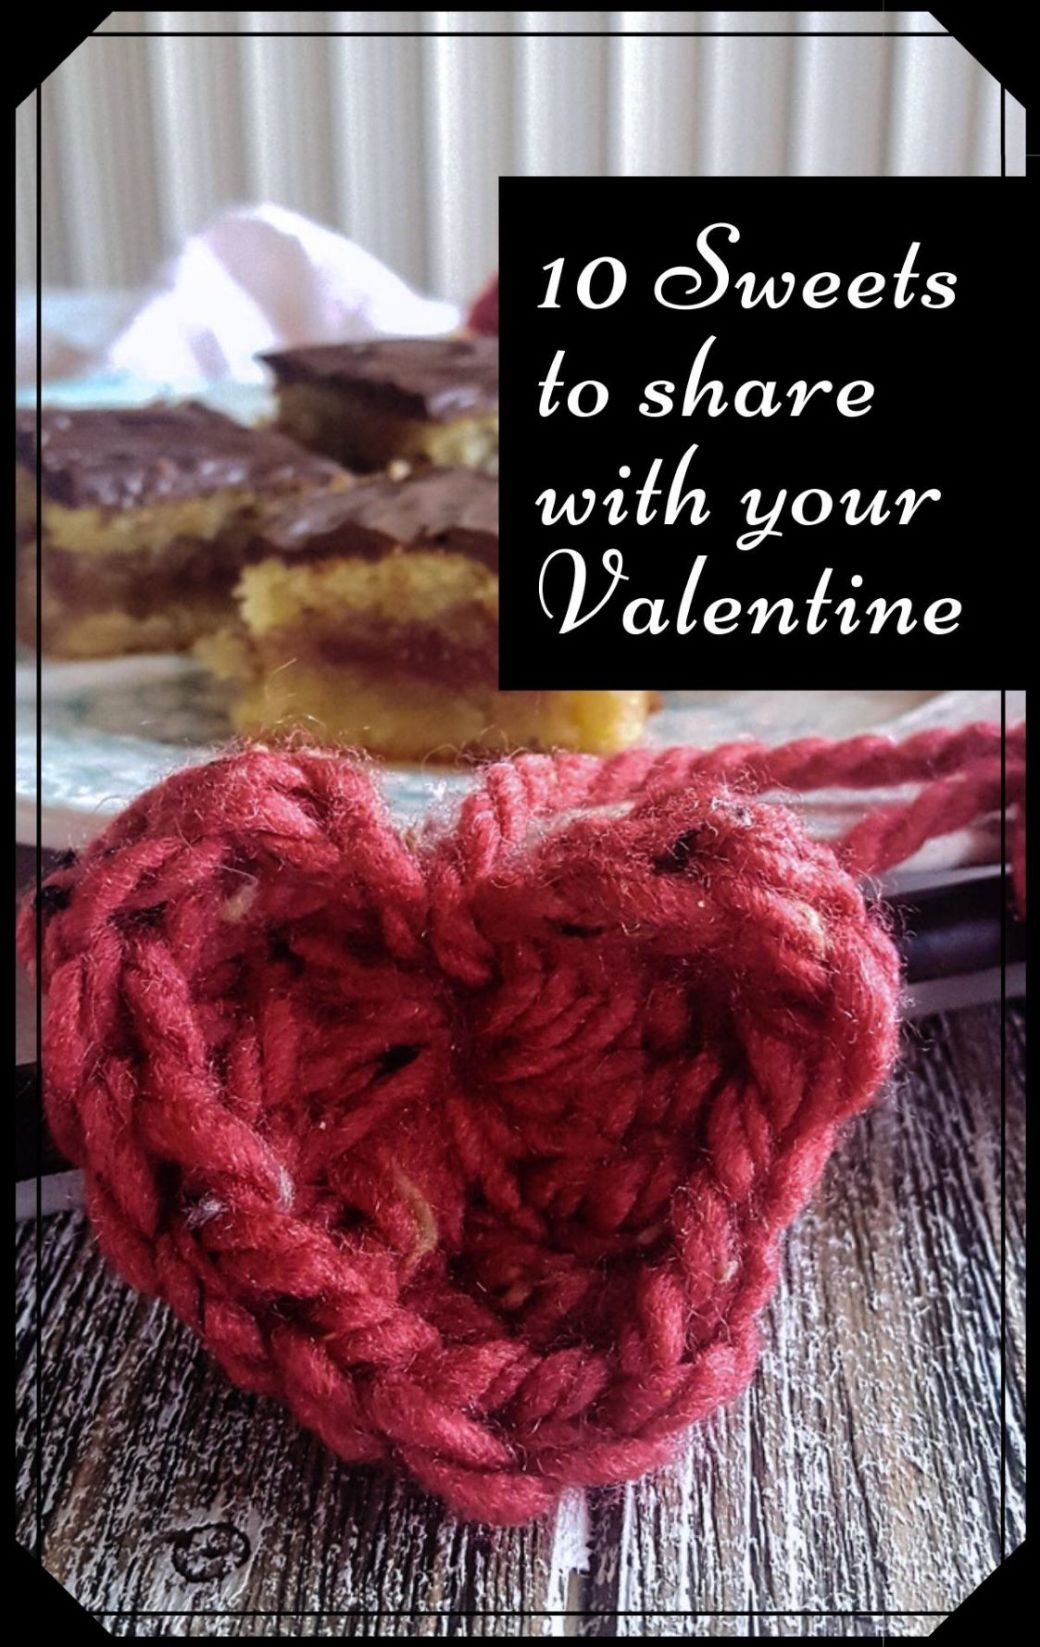 10 Sweets to Share with Your Valentine